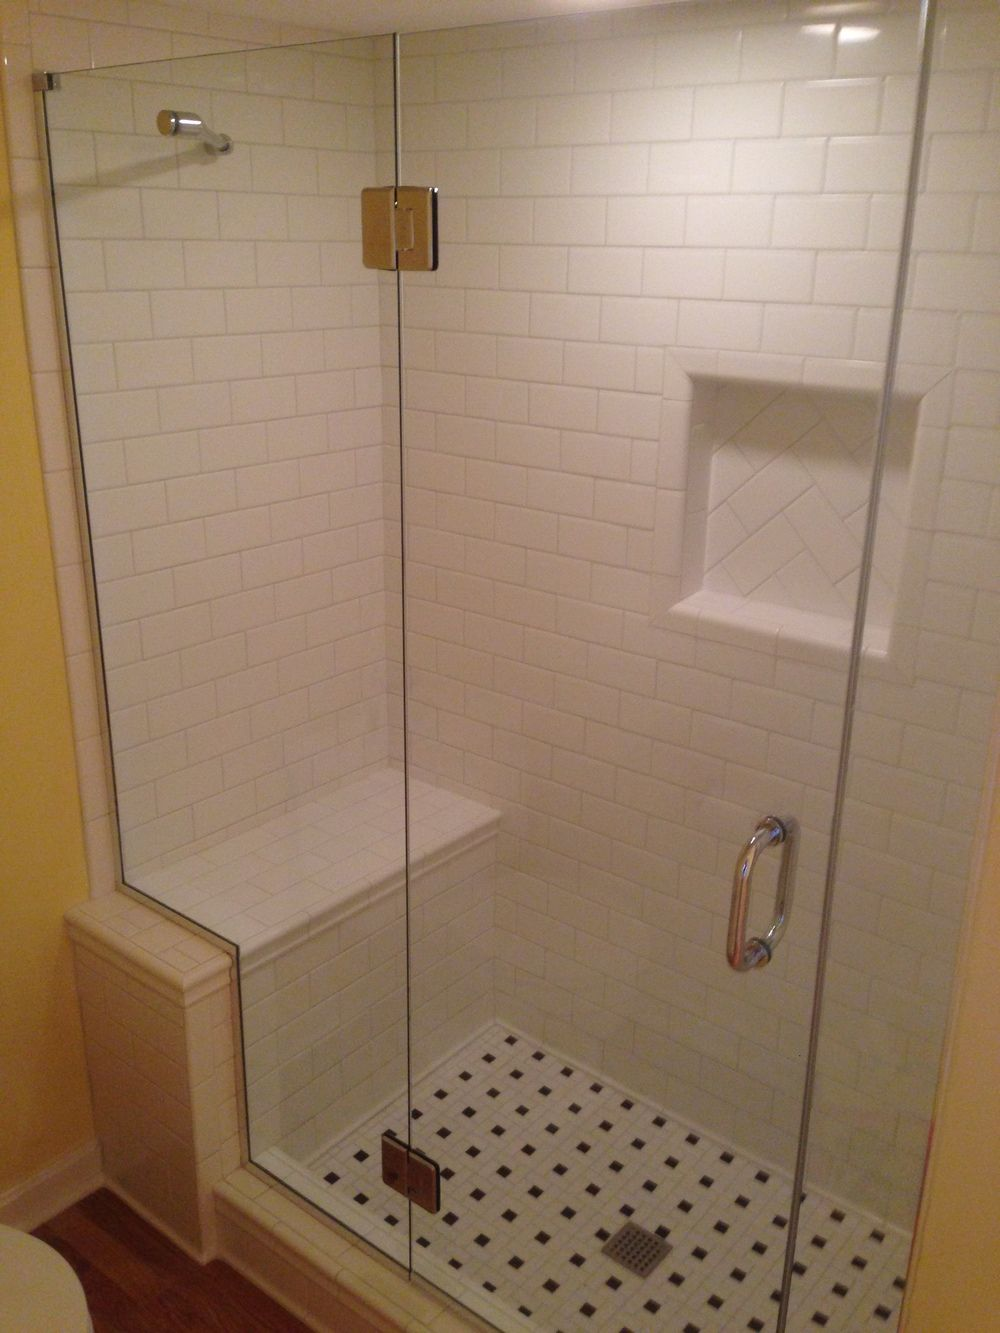 Converting Tub To Walk In Shower Small Bathroom With Shower Tub